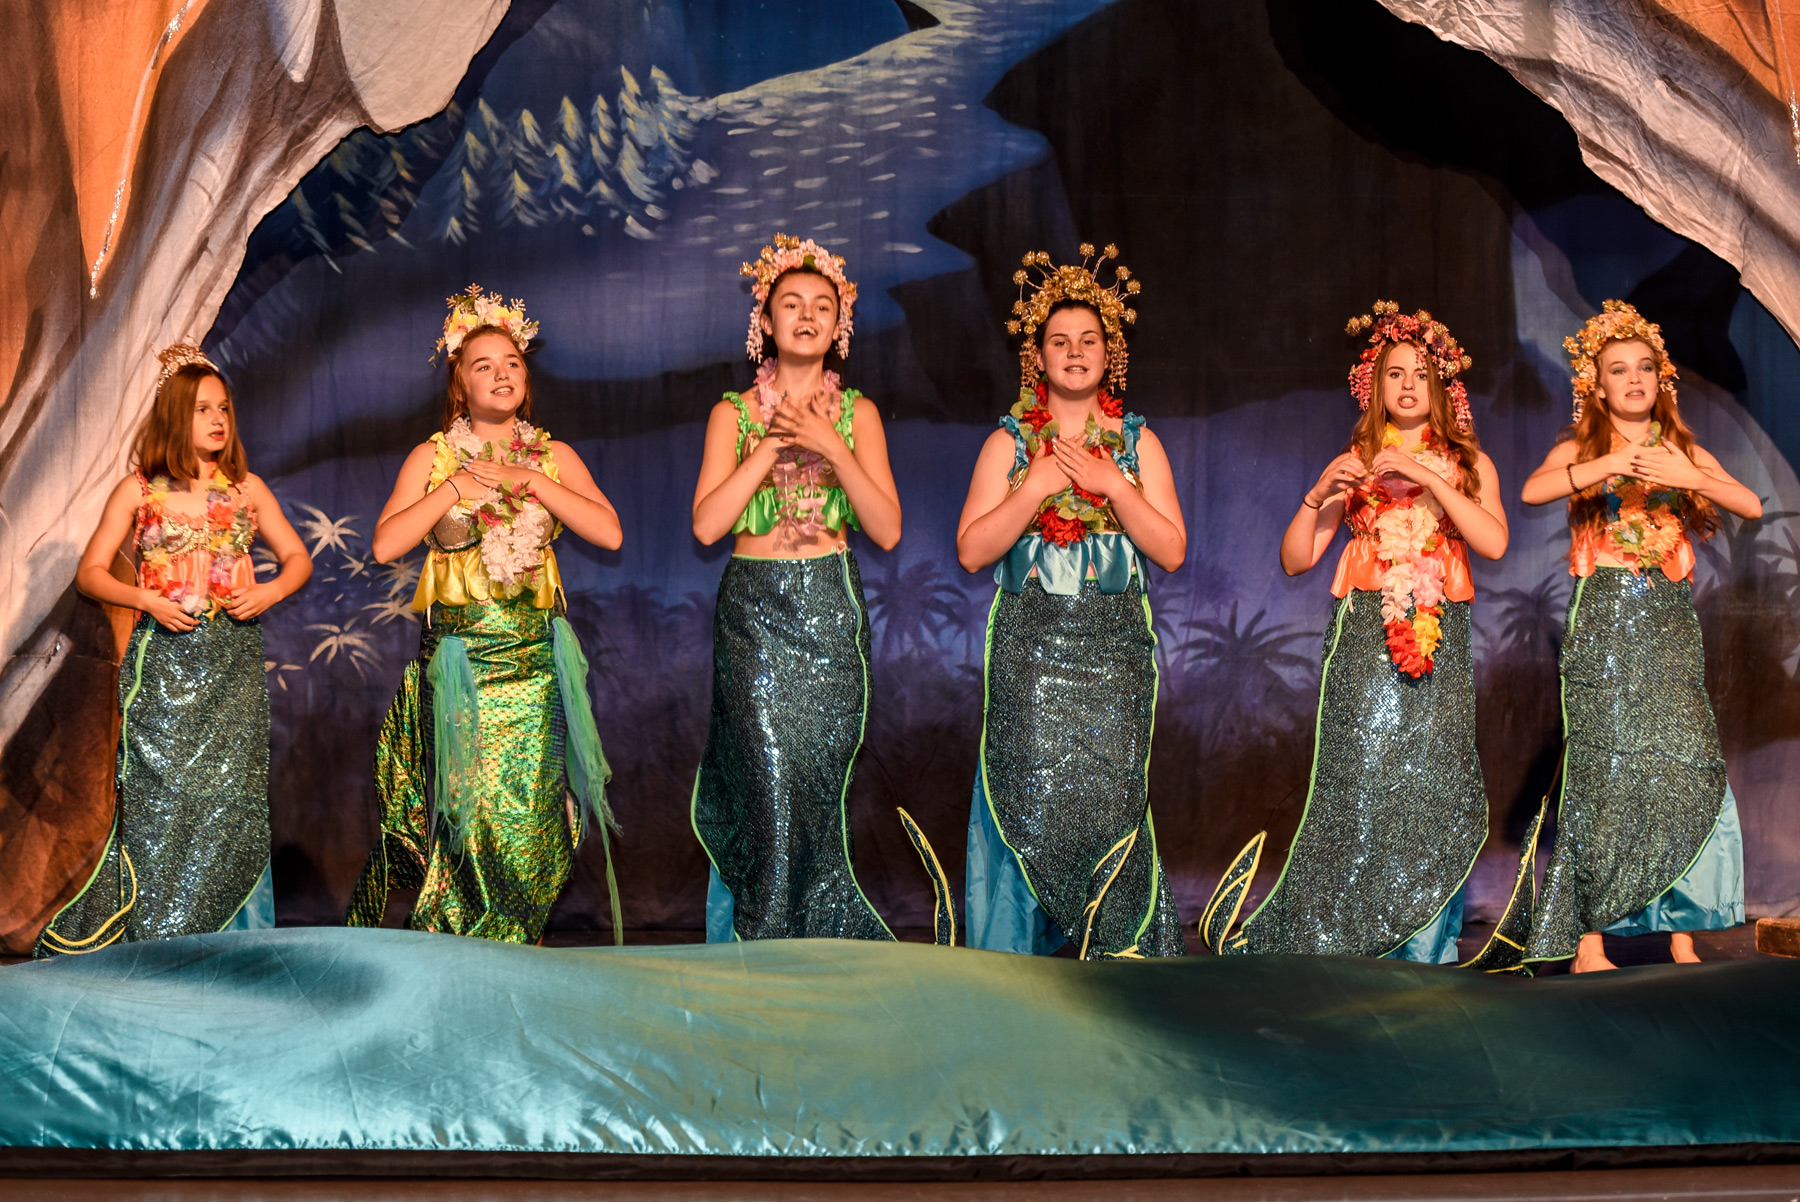 little-mermaid_DSC8411-PW.jpg